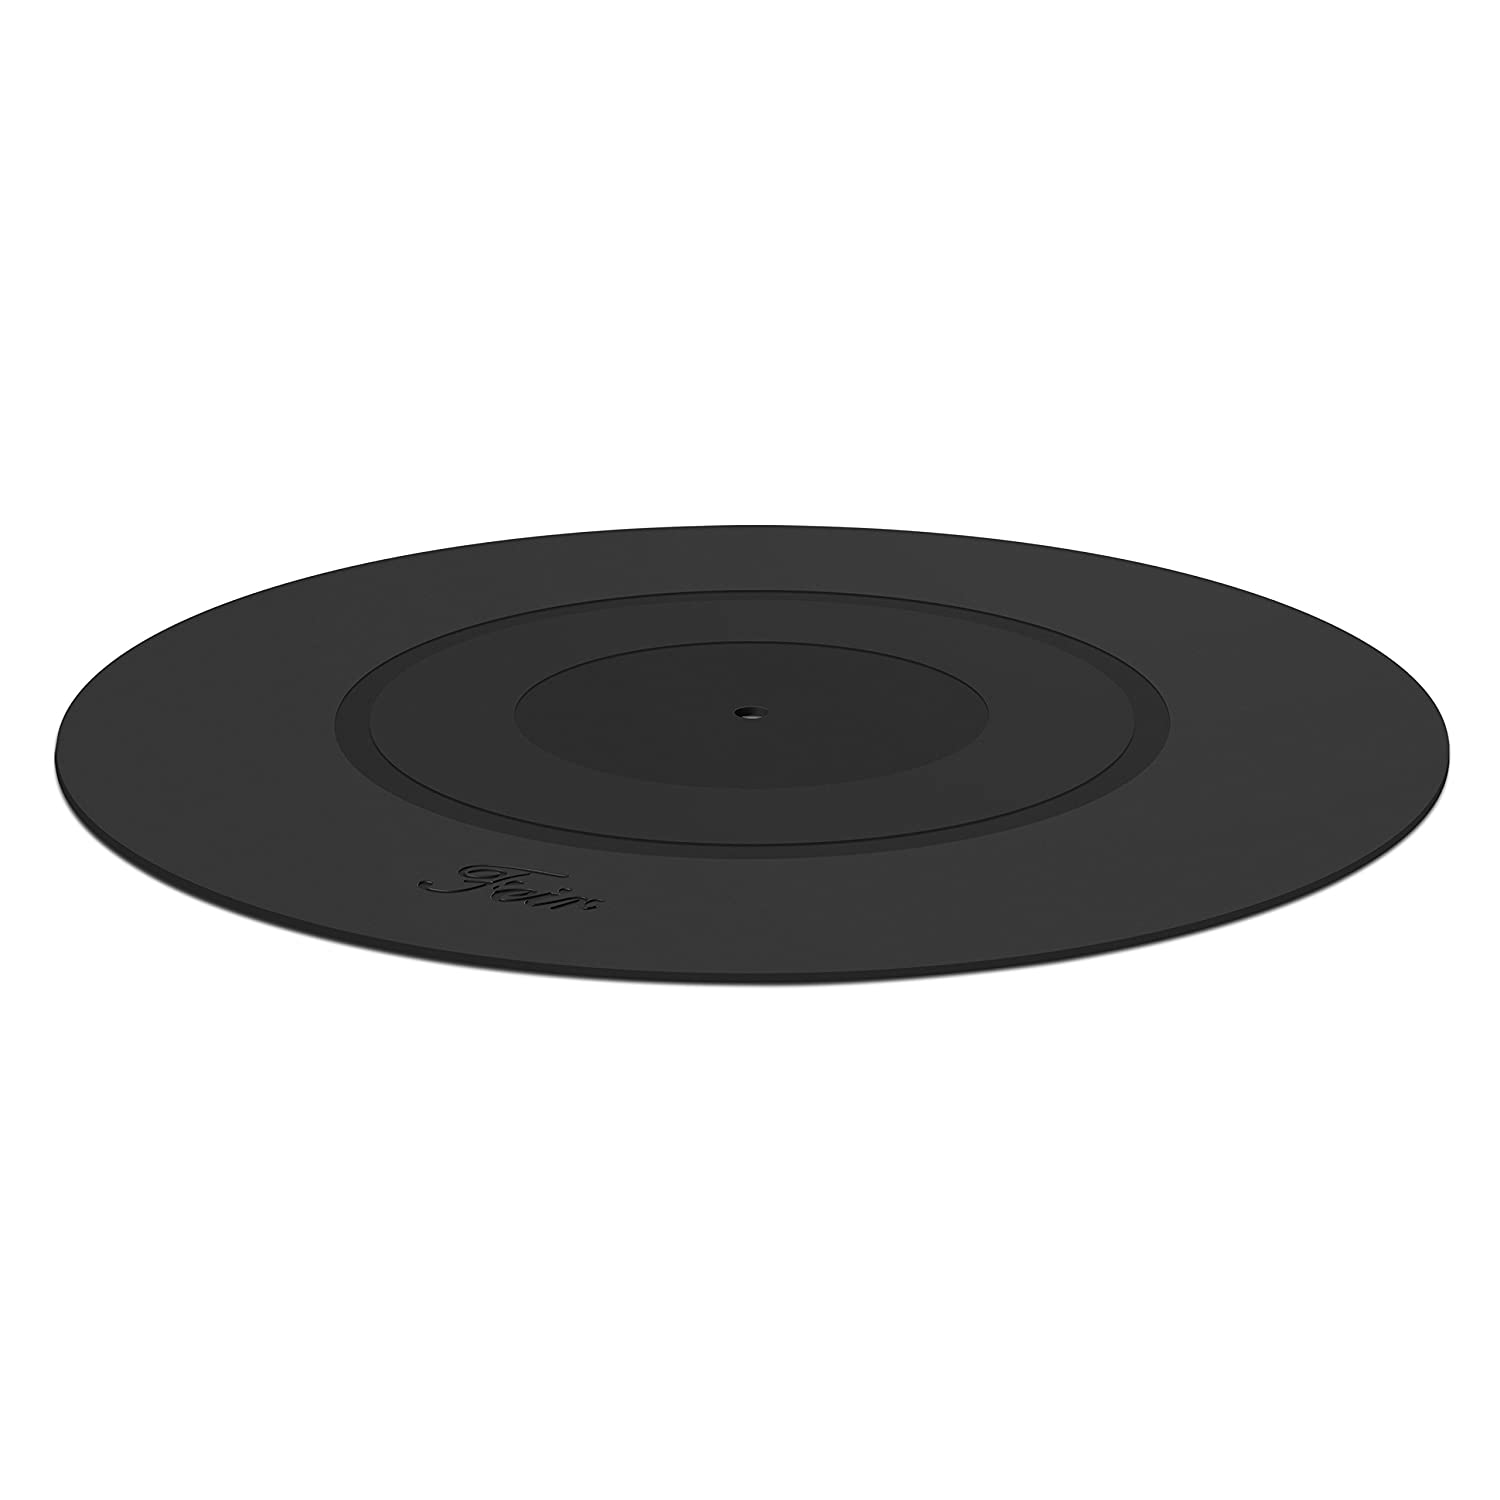 Turntable Platter Mat Black Rubber Silicone Design for Universal to All LP Vinyl Record Players